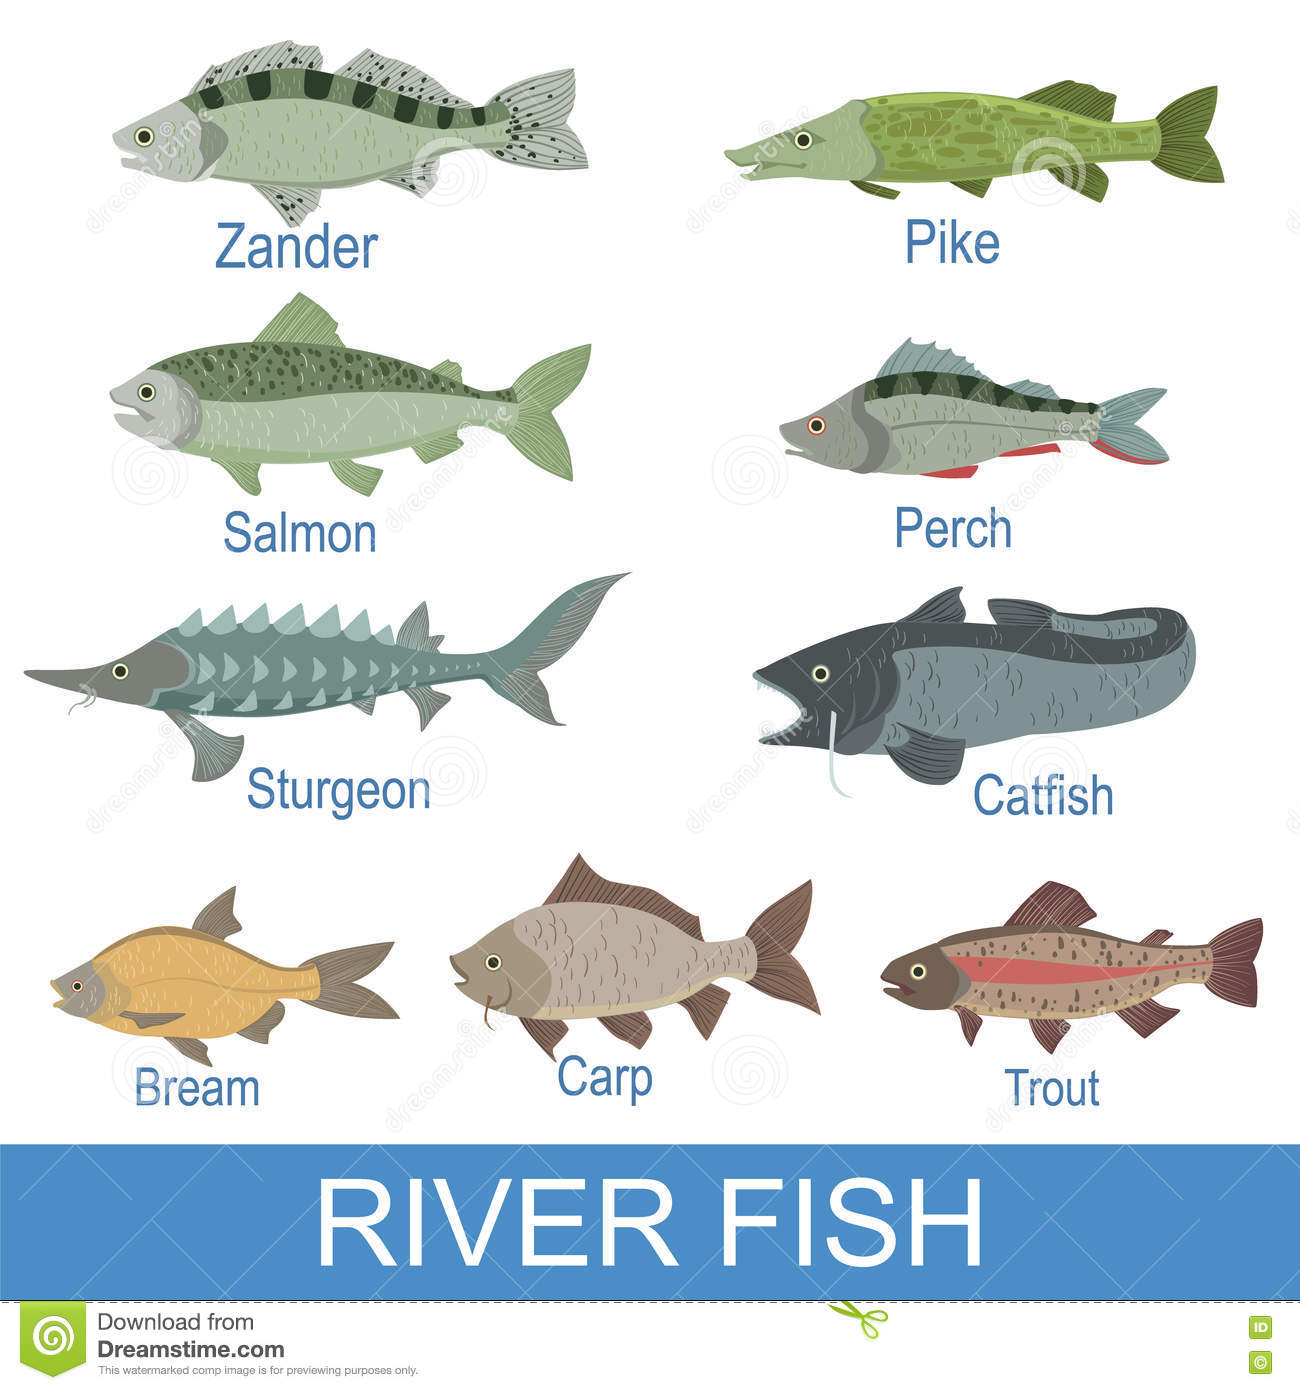 River Fish Identification Slate With Names Stock Vector - Image ...